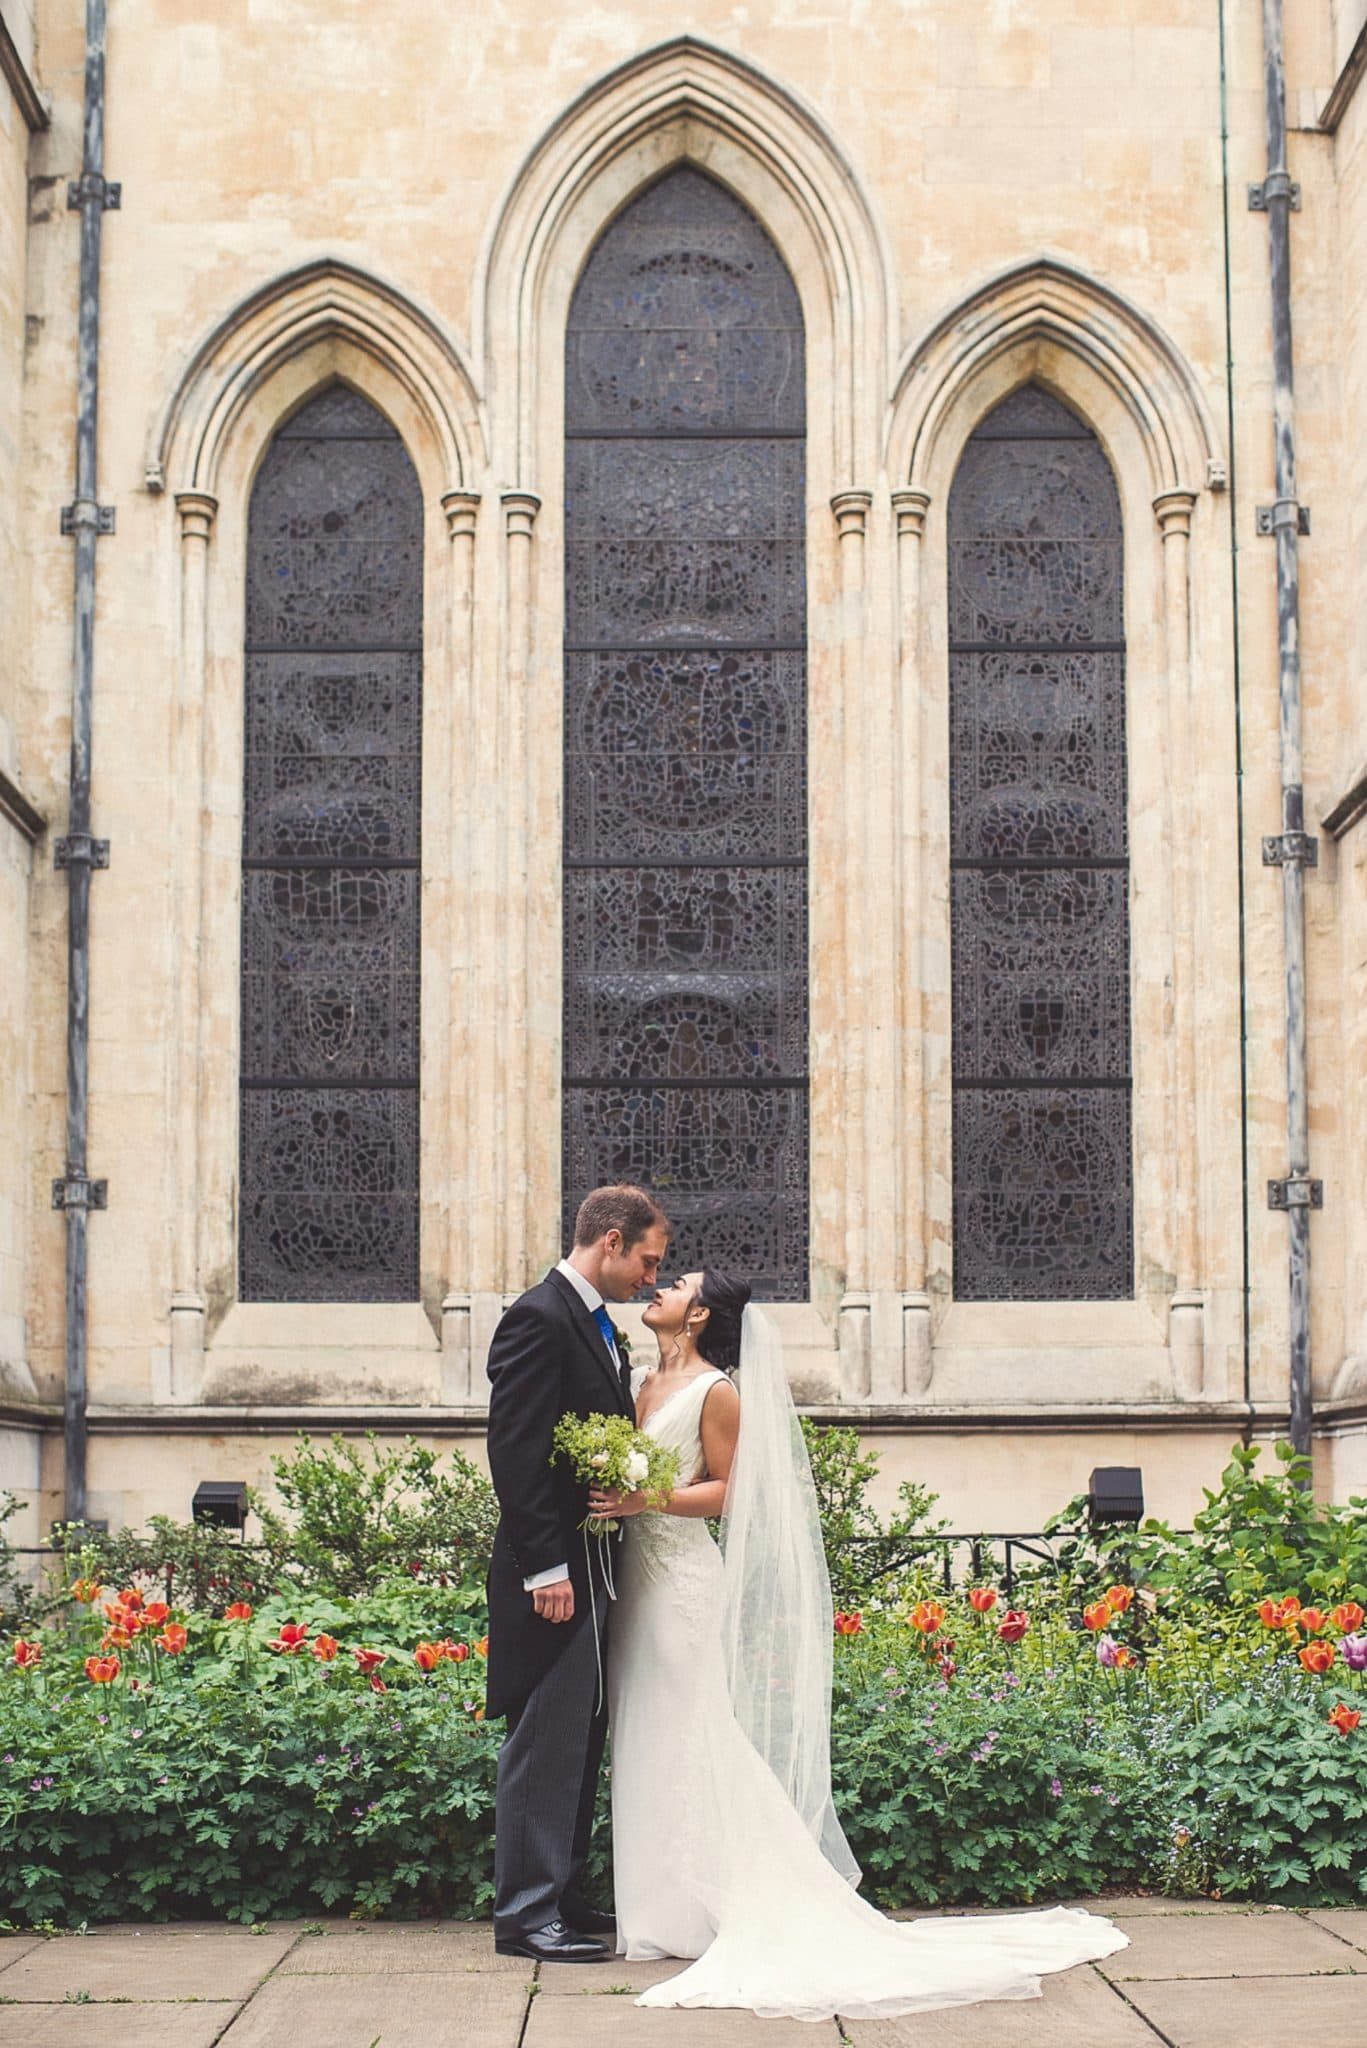 Bride and Groom standing in front of the stained glass windows of Temple Church in Inner Temple London